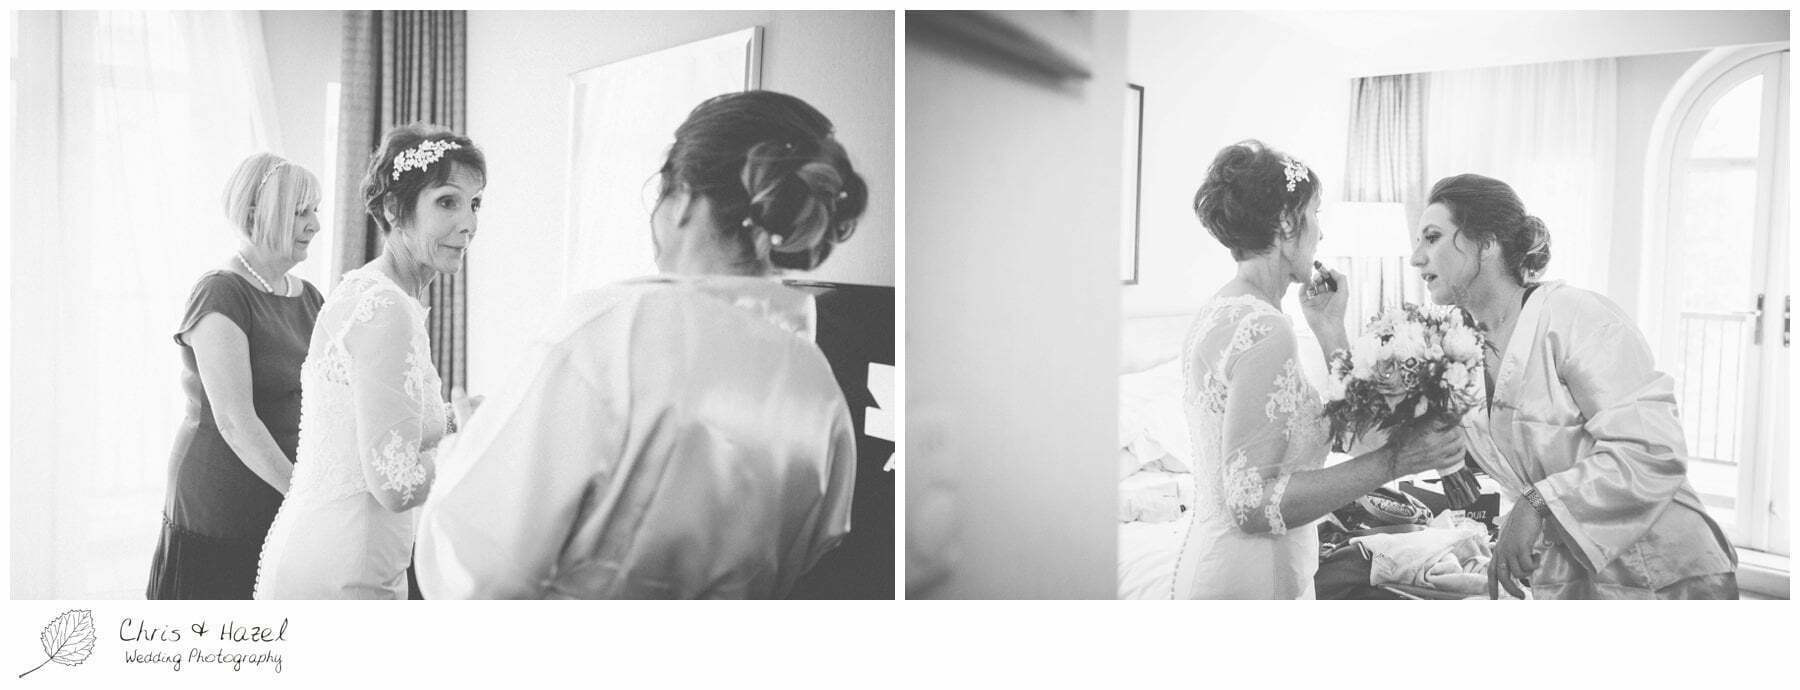 bride putting on lipstick, bridal preparations, documentary wedding photography, york hilton hotel, york hilton hotel wedding, york wedding photography, york wedding photographer, york wedding day, don hayes, , helen hayes, chris and hazel wedding photography, chris & hazel,